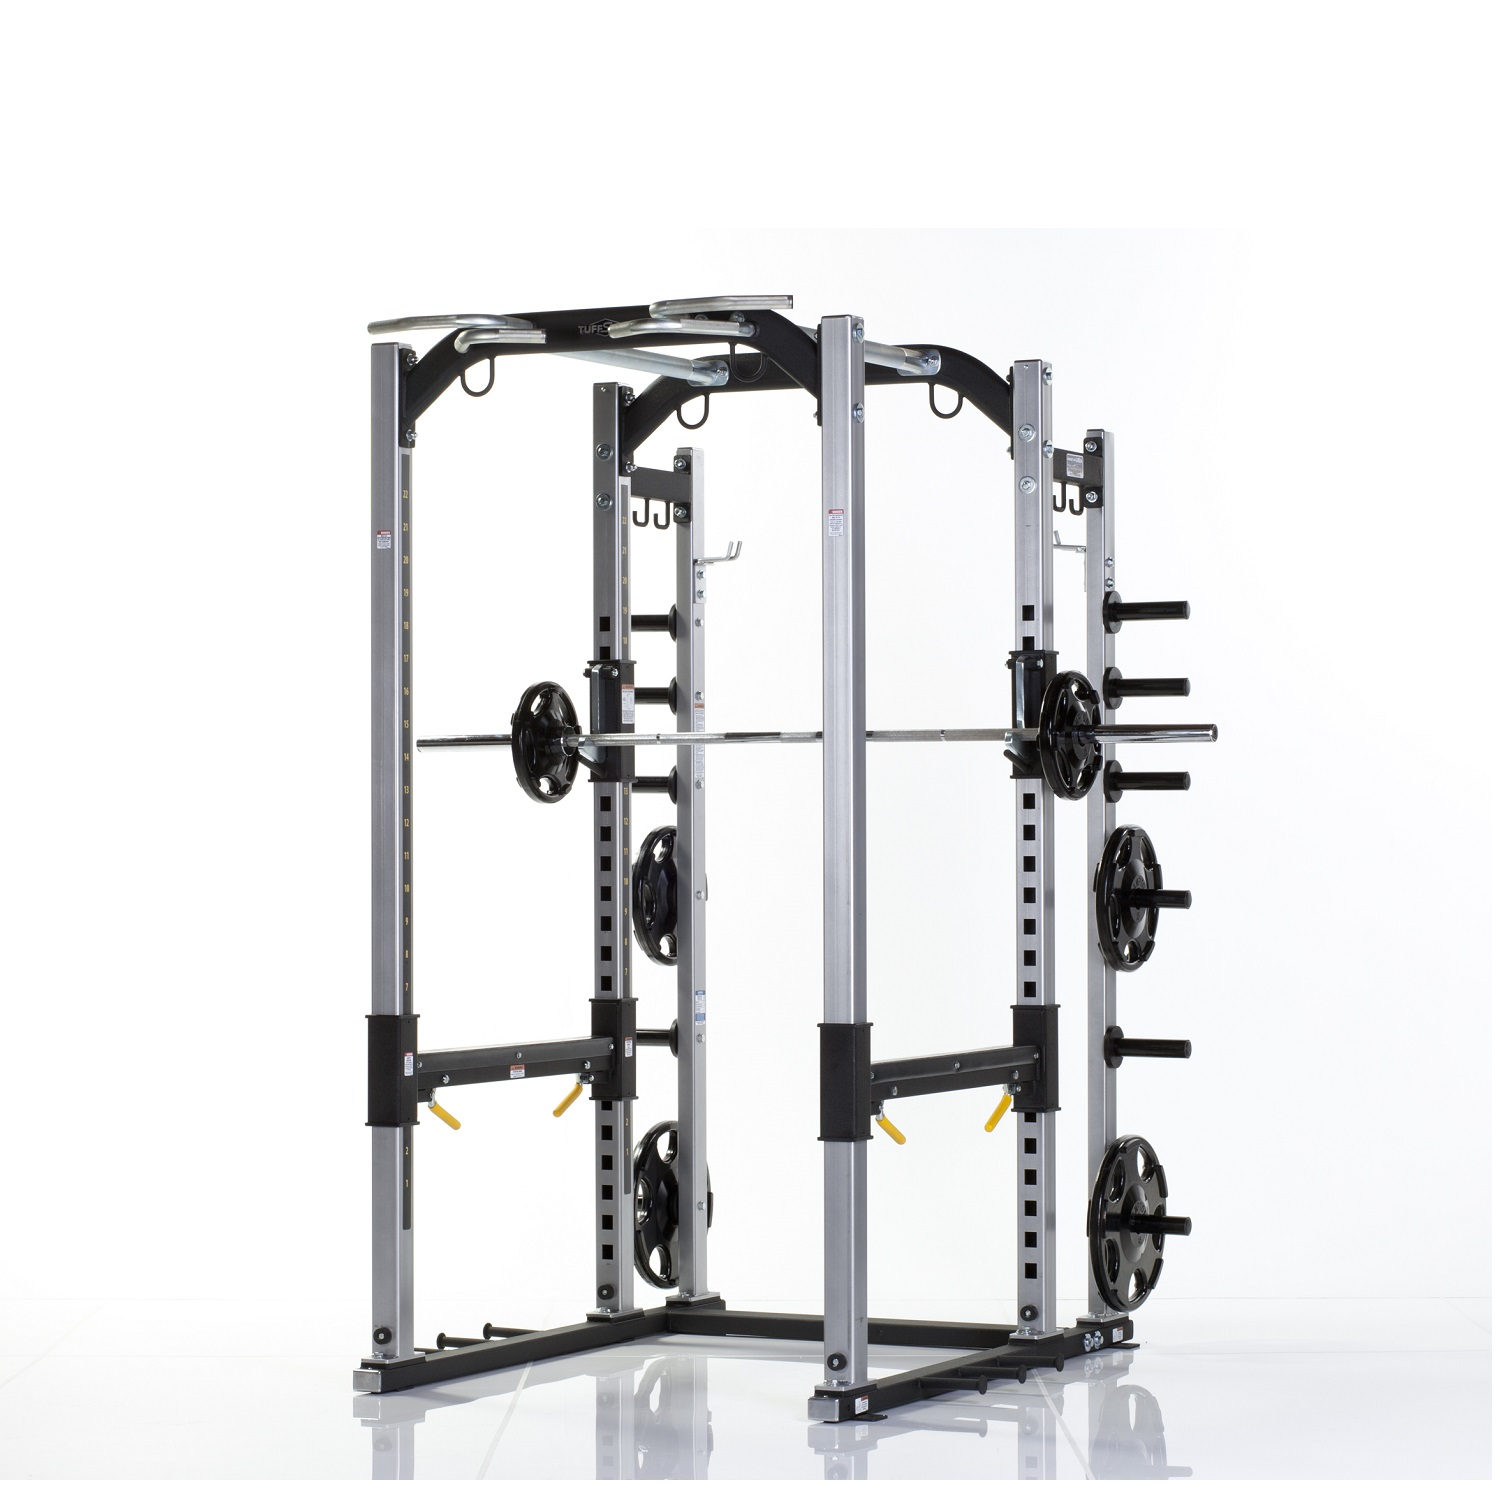 PXLS-7930 Power Rack (Cage)